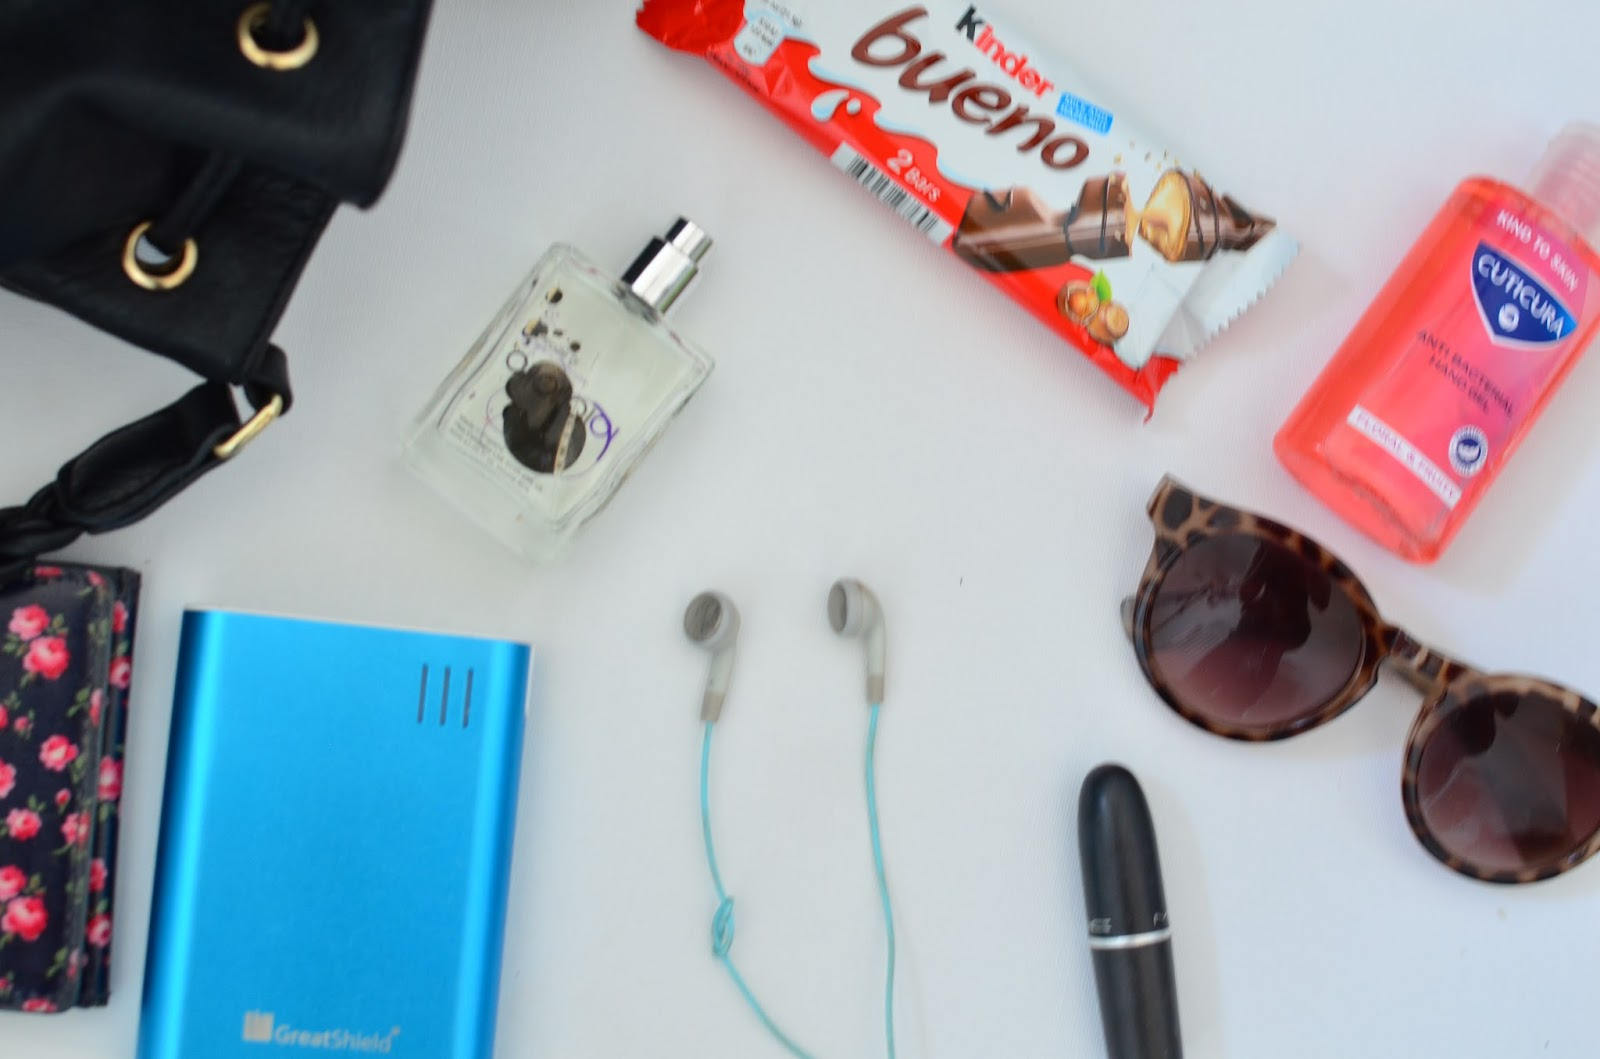 Recently I Was Challenged By Kinder Bueno To Show What Really In My Handbag On Blog Be Honest More Than Hy Agree As One Of